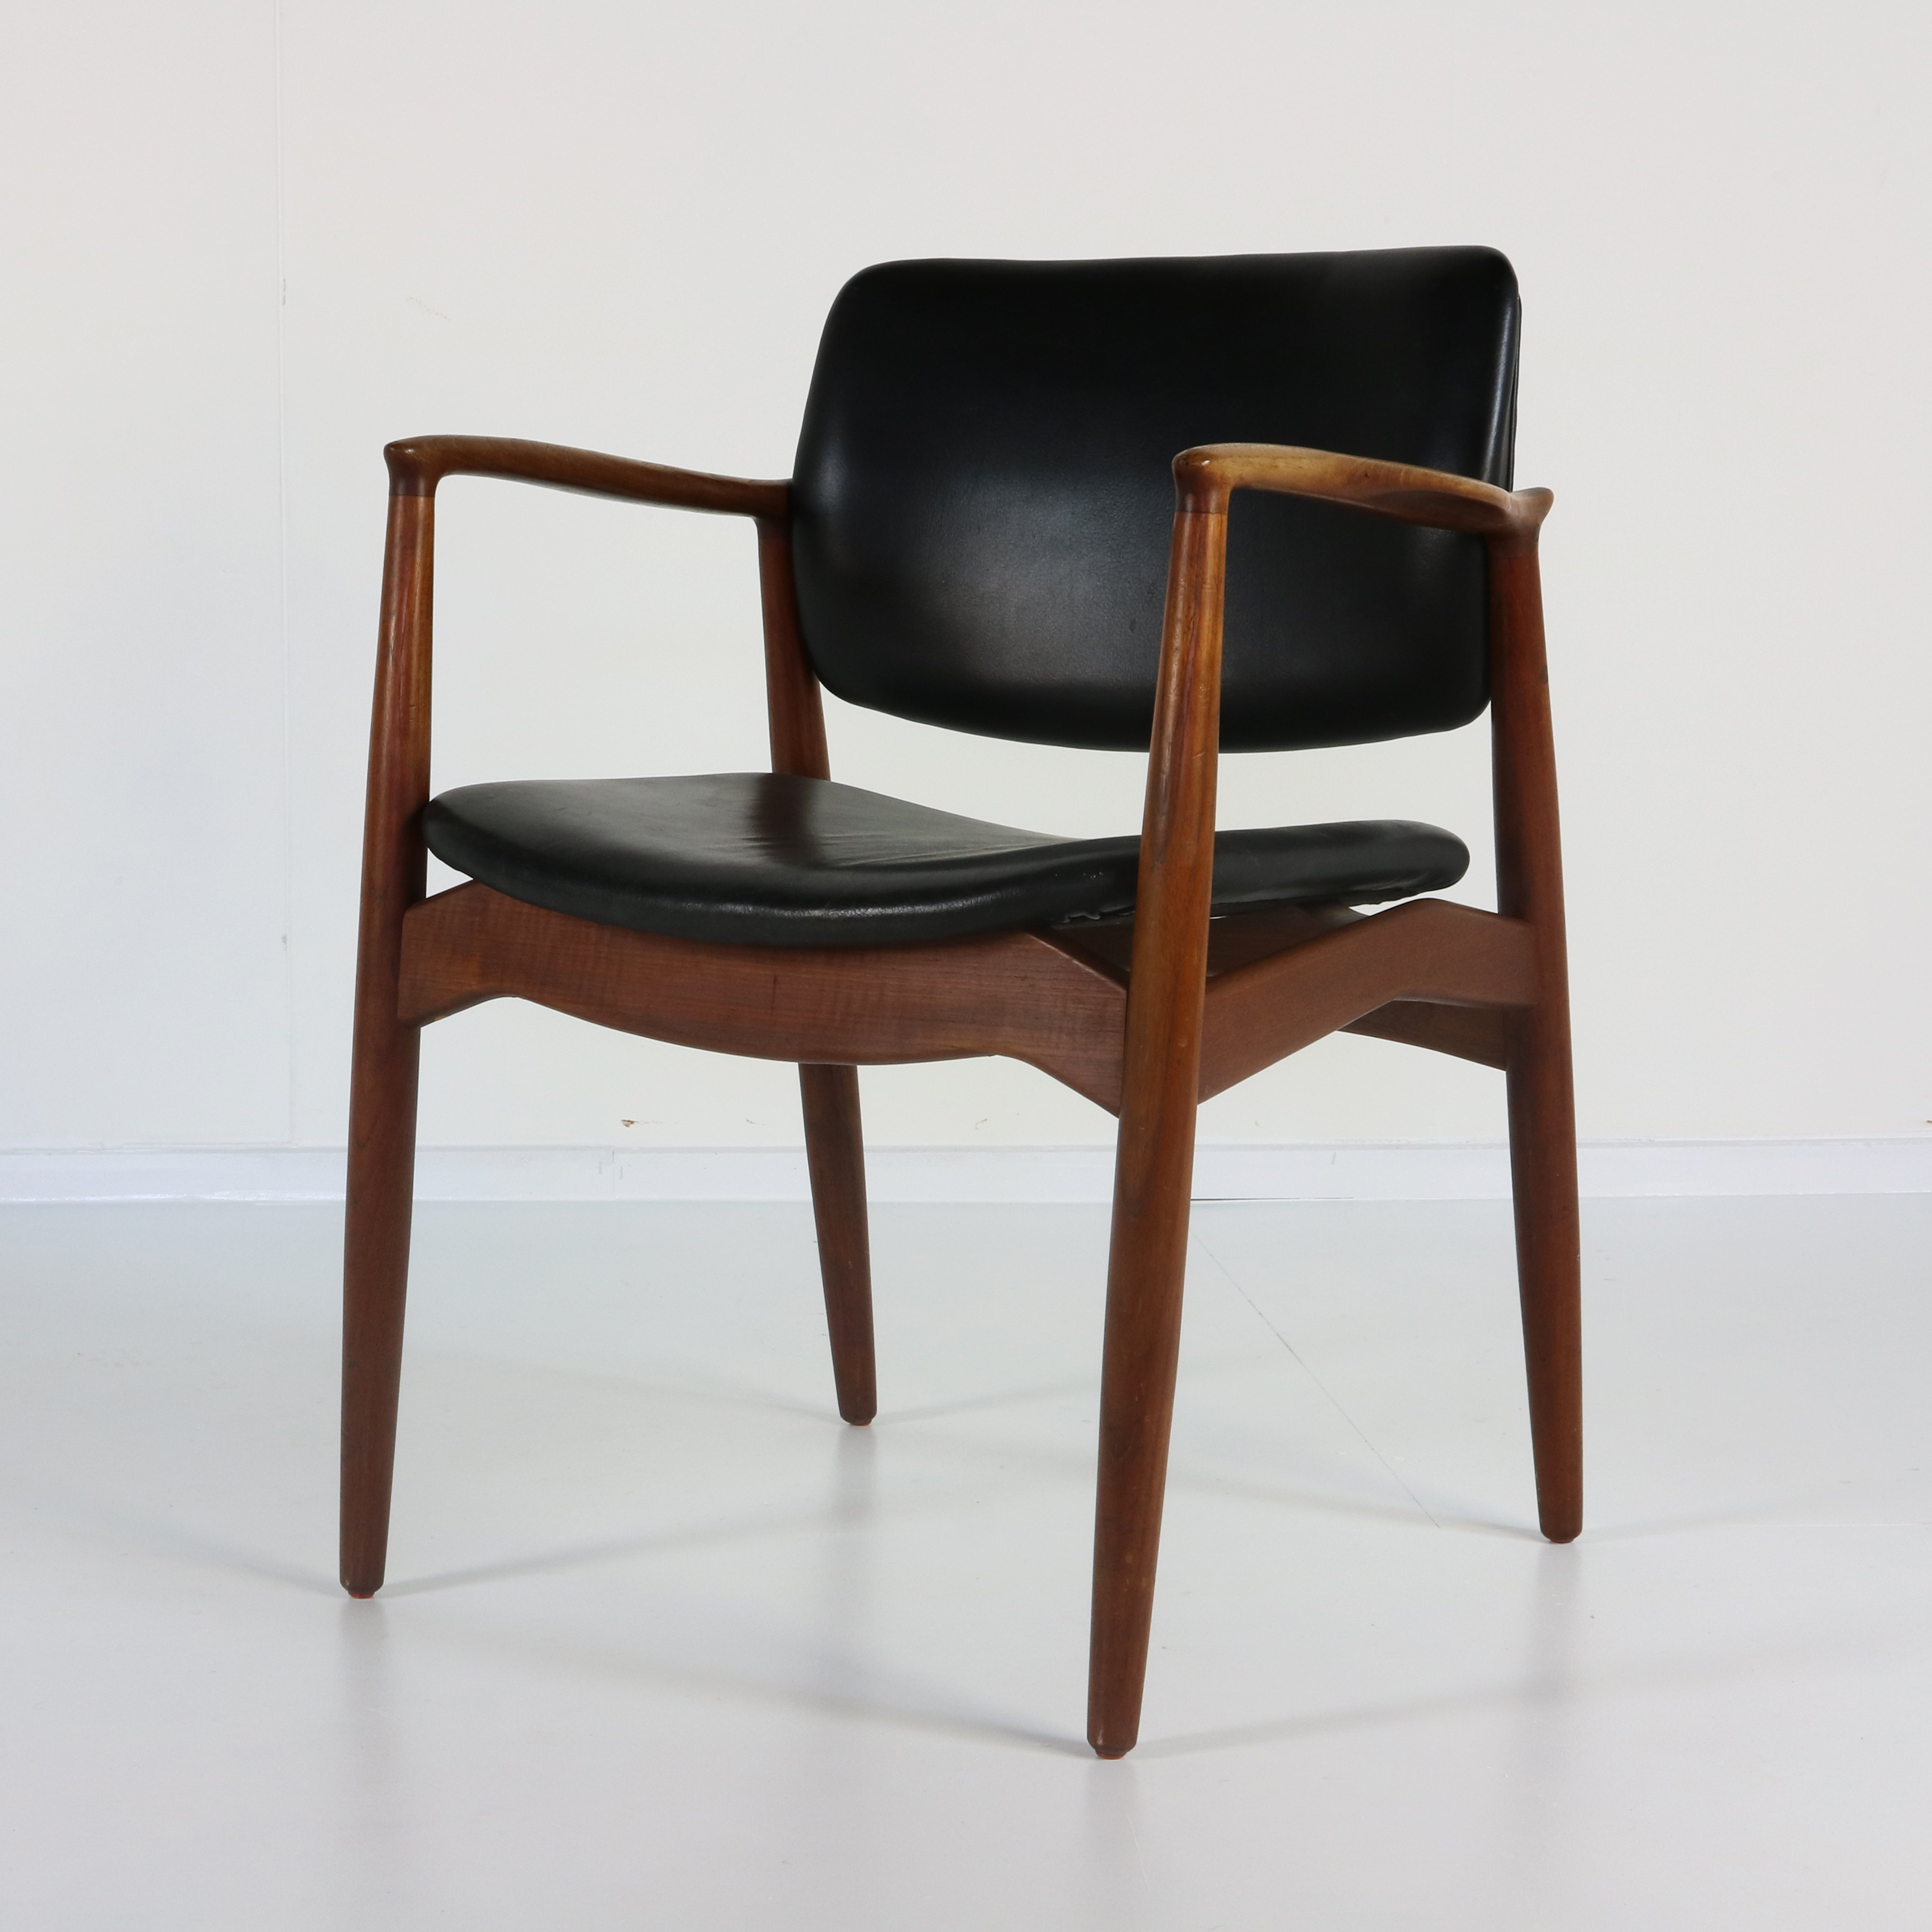 Excellent design Danish armchair